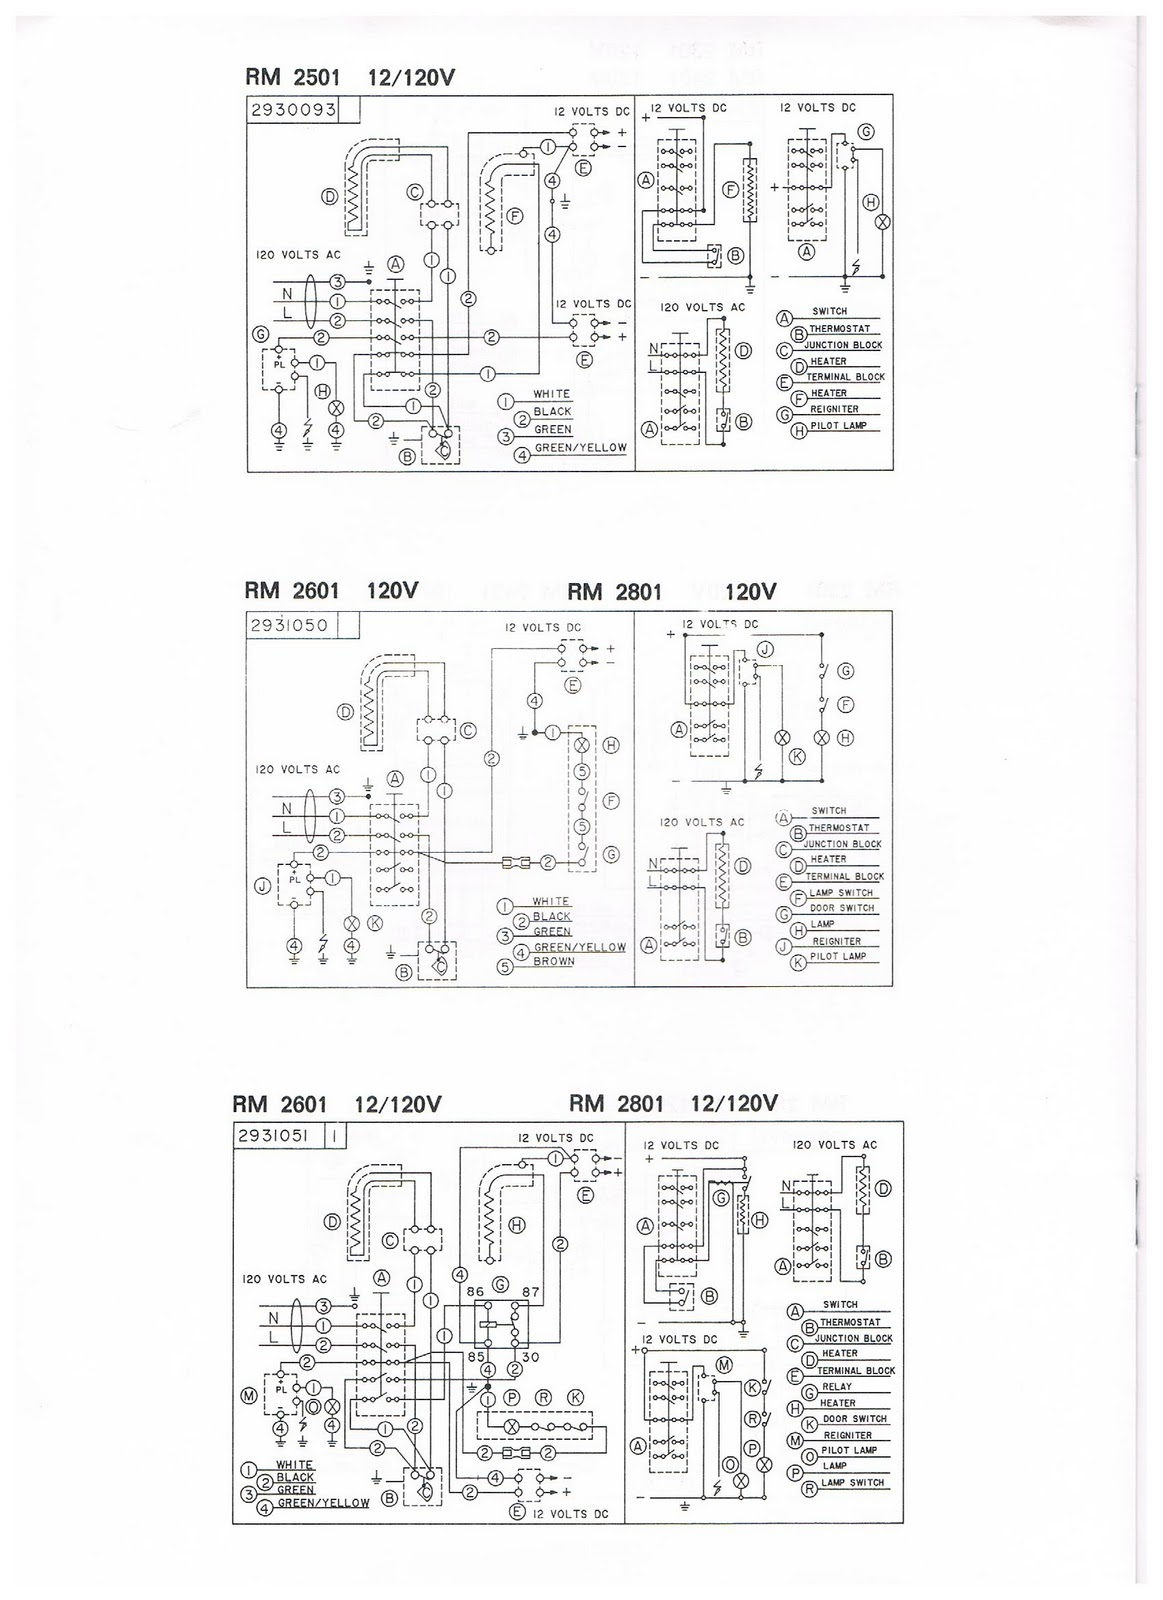 1983 Fleetwood Pace Arrow Owners Manuals Dometic 2 Way Refrigerator 85 Wiring Diagram Posted By Vintage Travel Trailers At 718 Pm